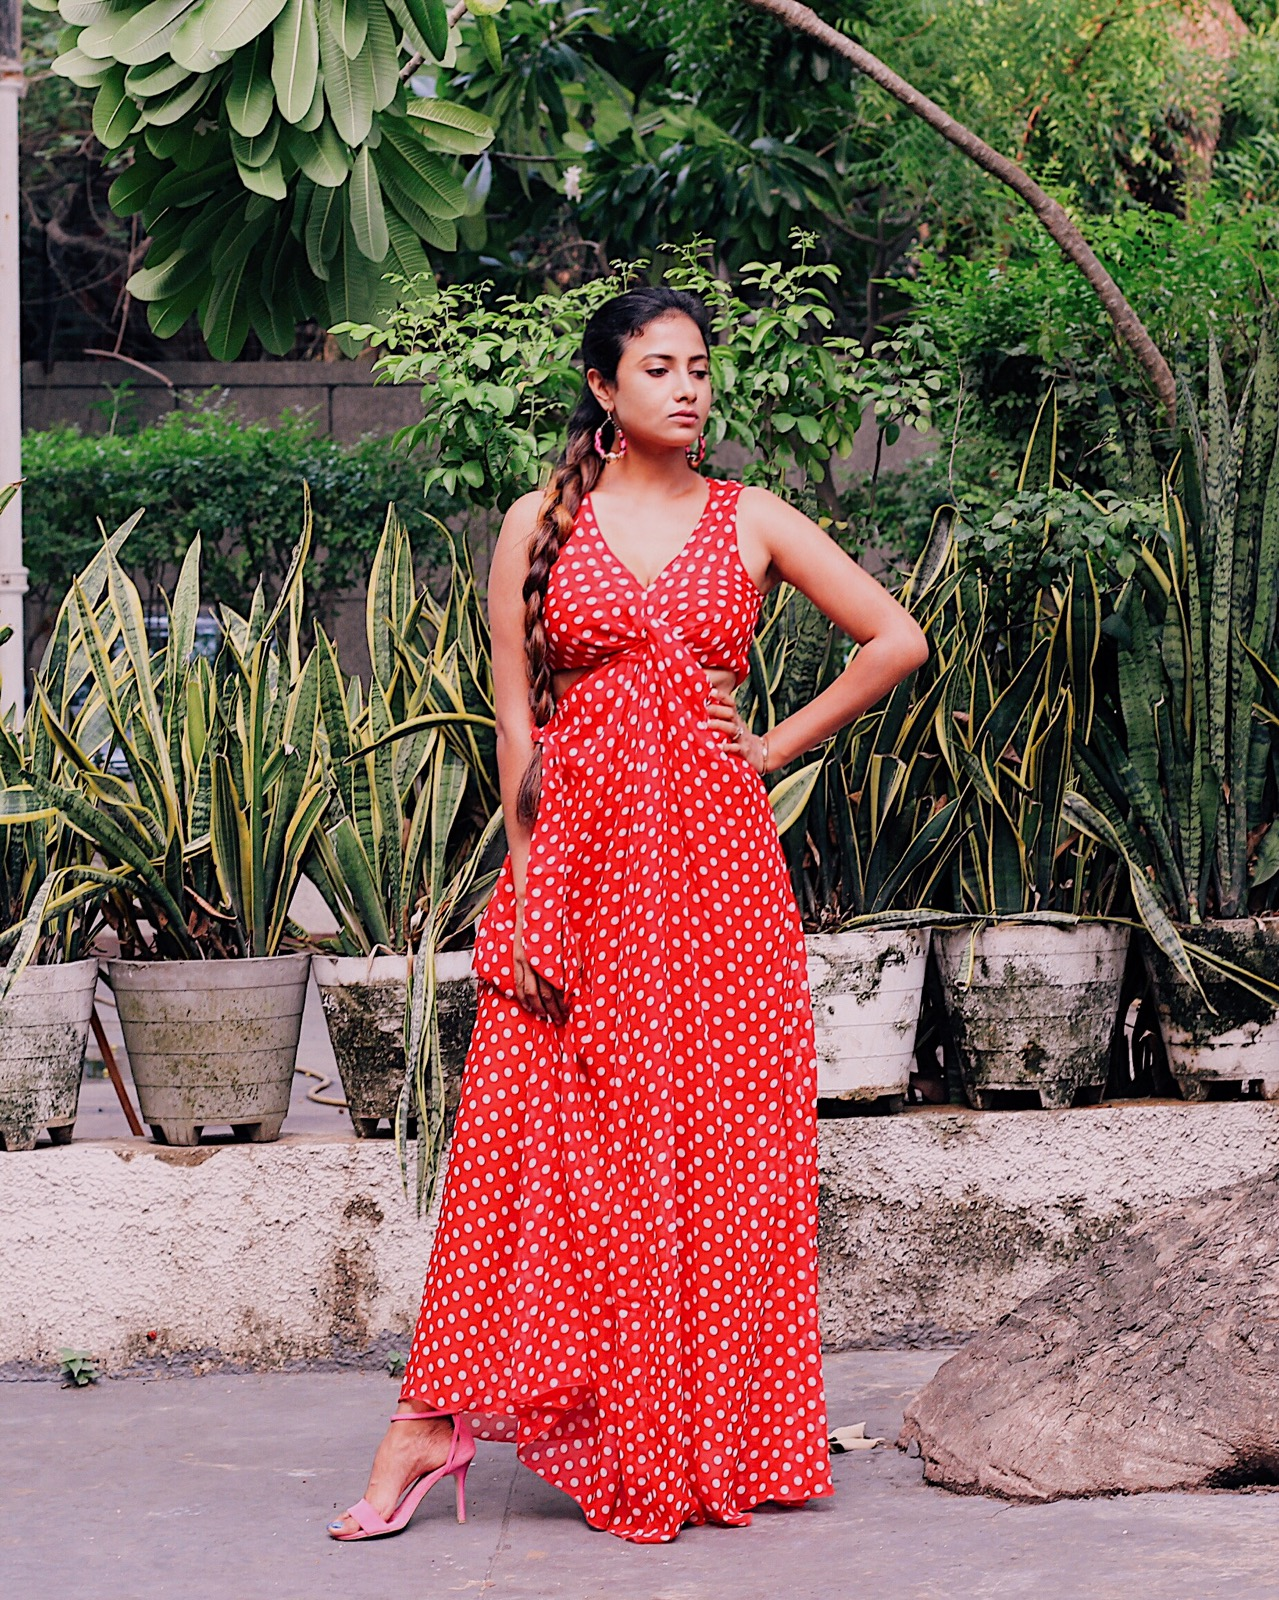 tips on picking the perfect summer dress, summer dress, polka dots, polka dots trend, red and pink, polka dot dress, indian blogger, uk blog, london blogger, polka dot maxi dress,